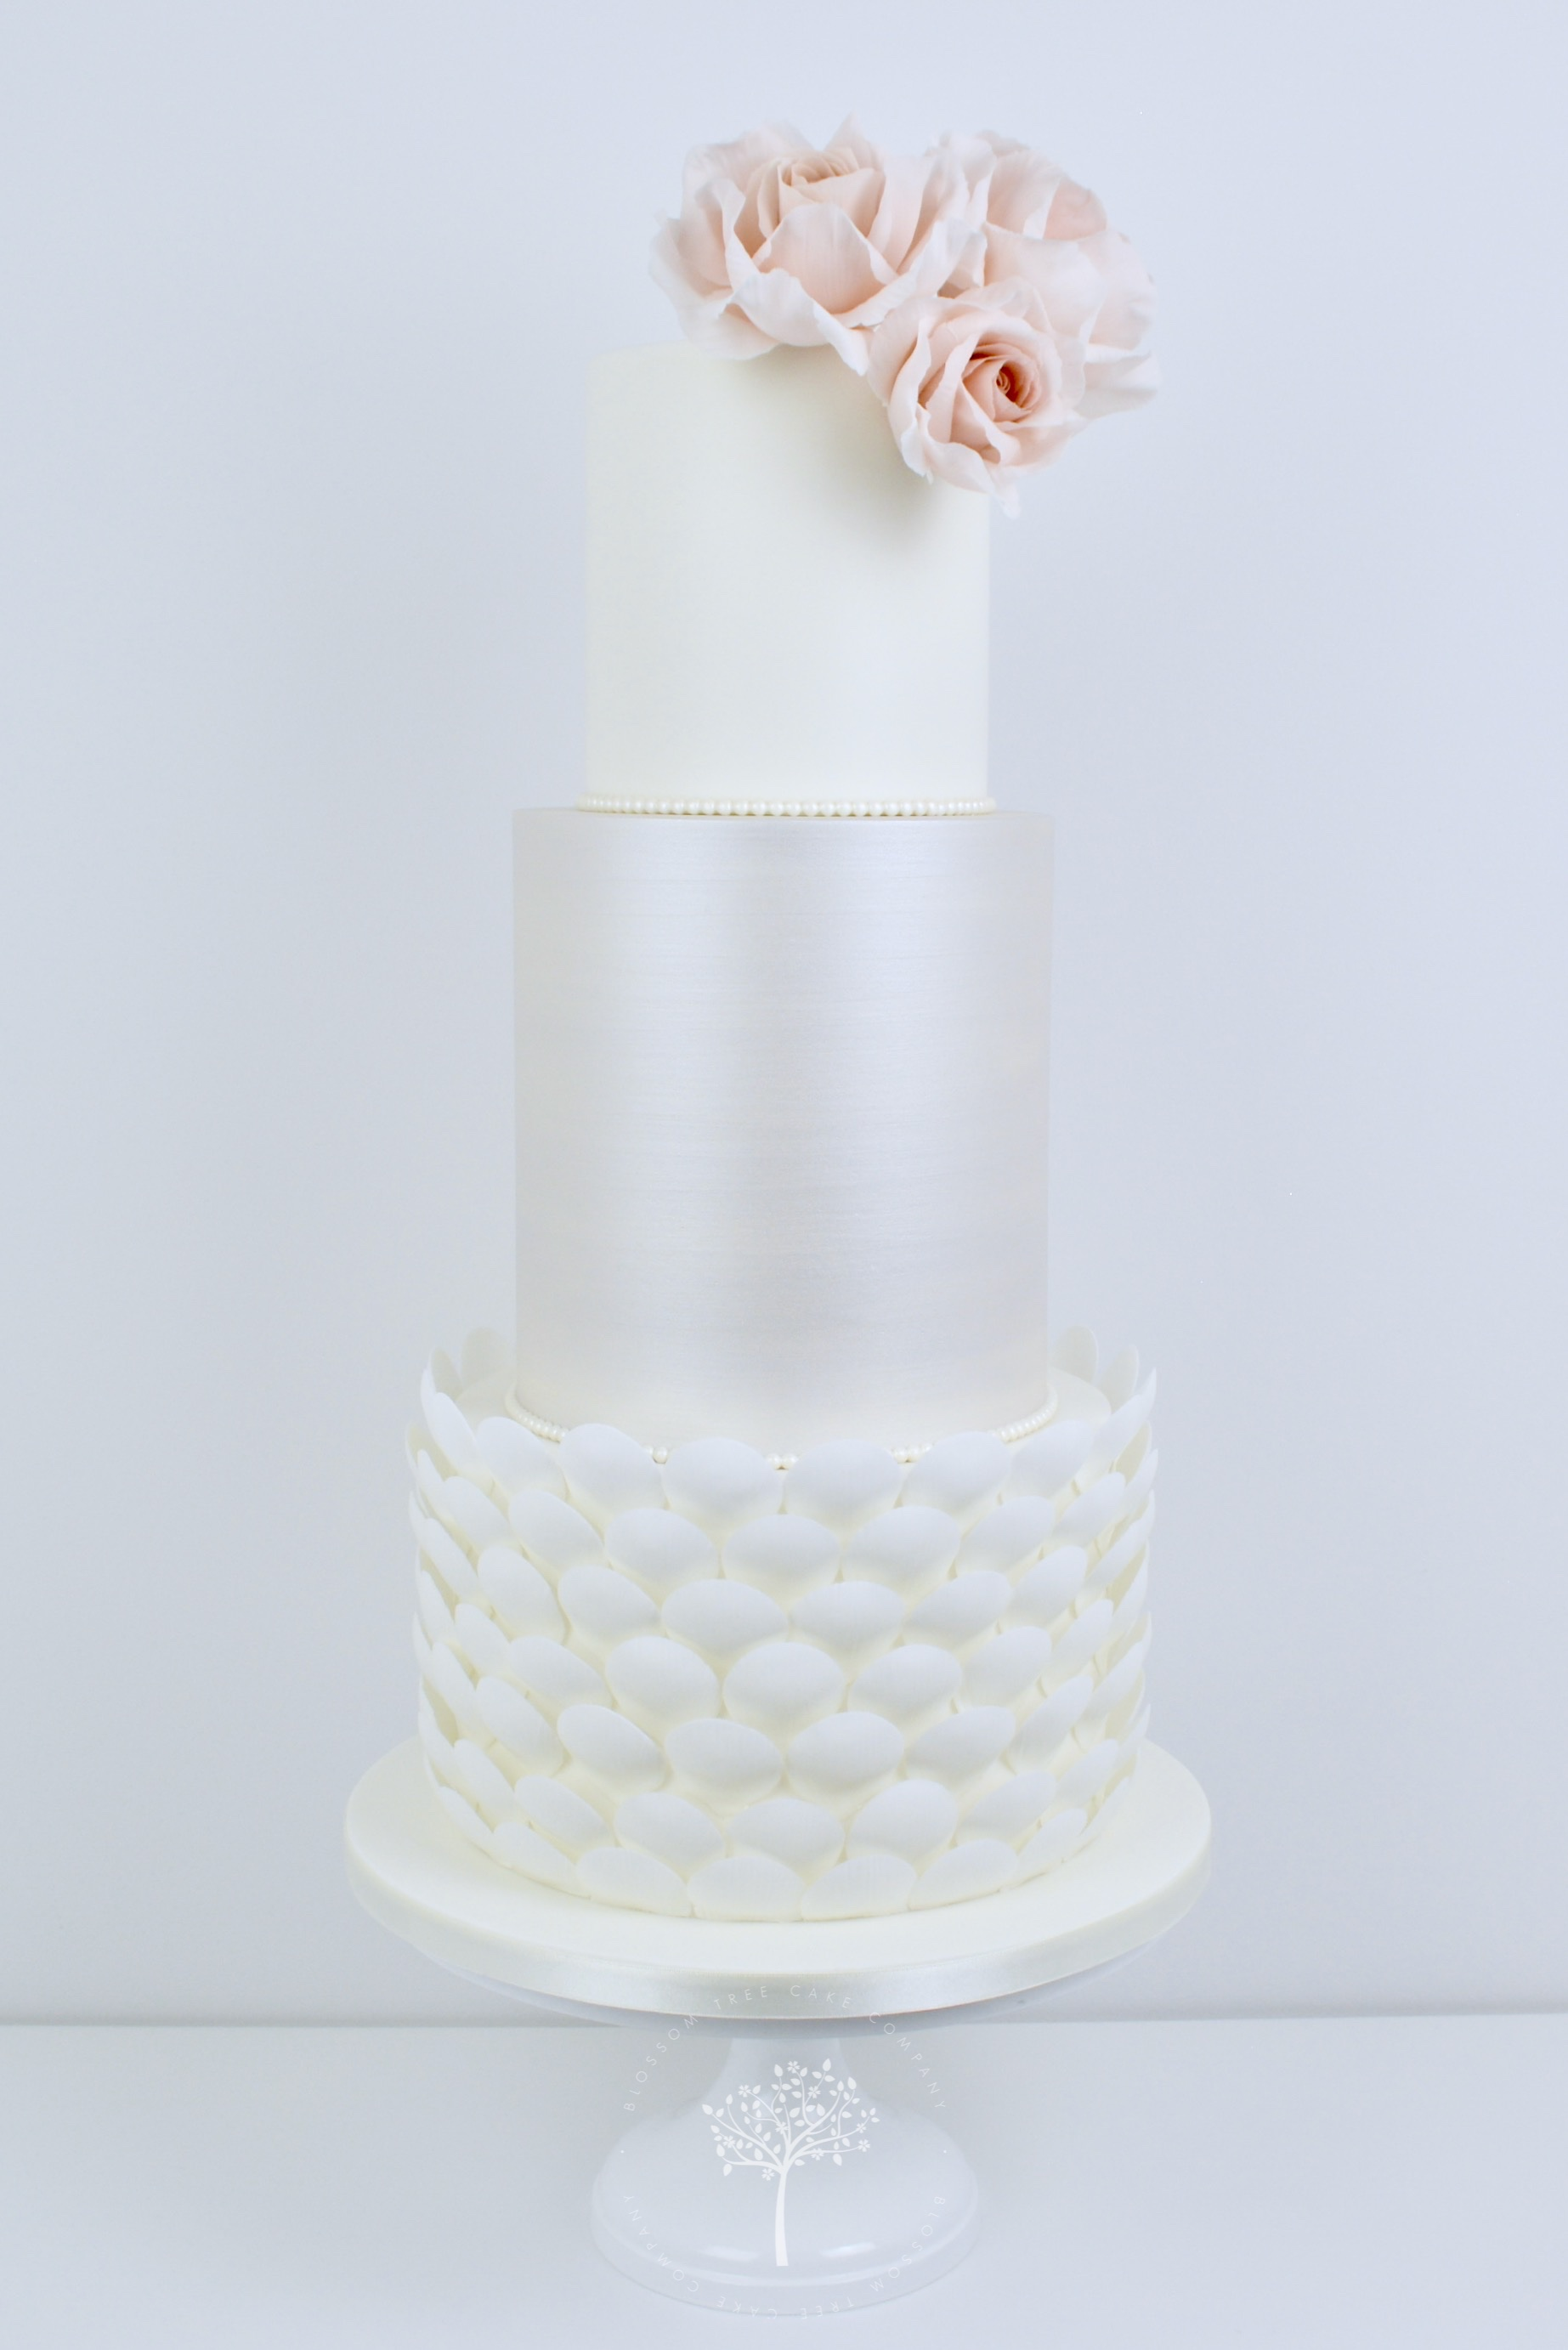 Pearlescent and Blush Petal Shells wedding cake by Blossom Tree Cake Company Harrogate North Yorkshire.jpg